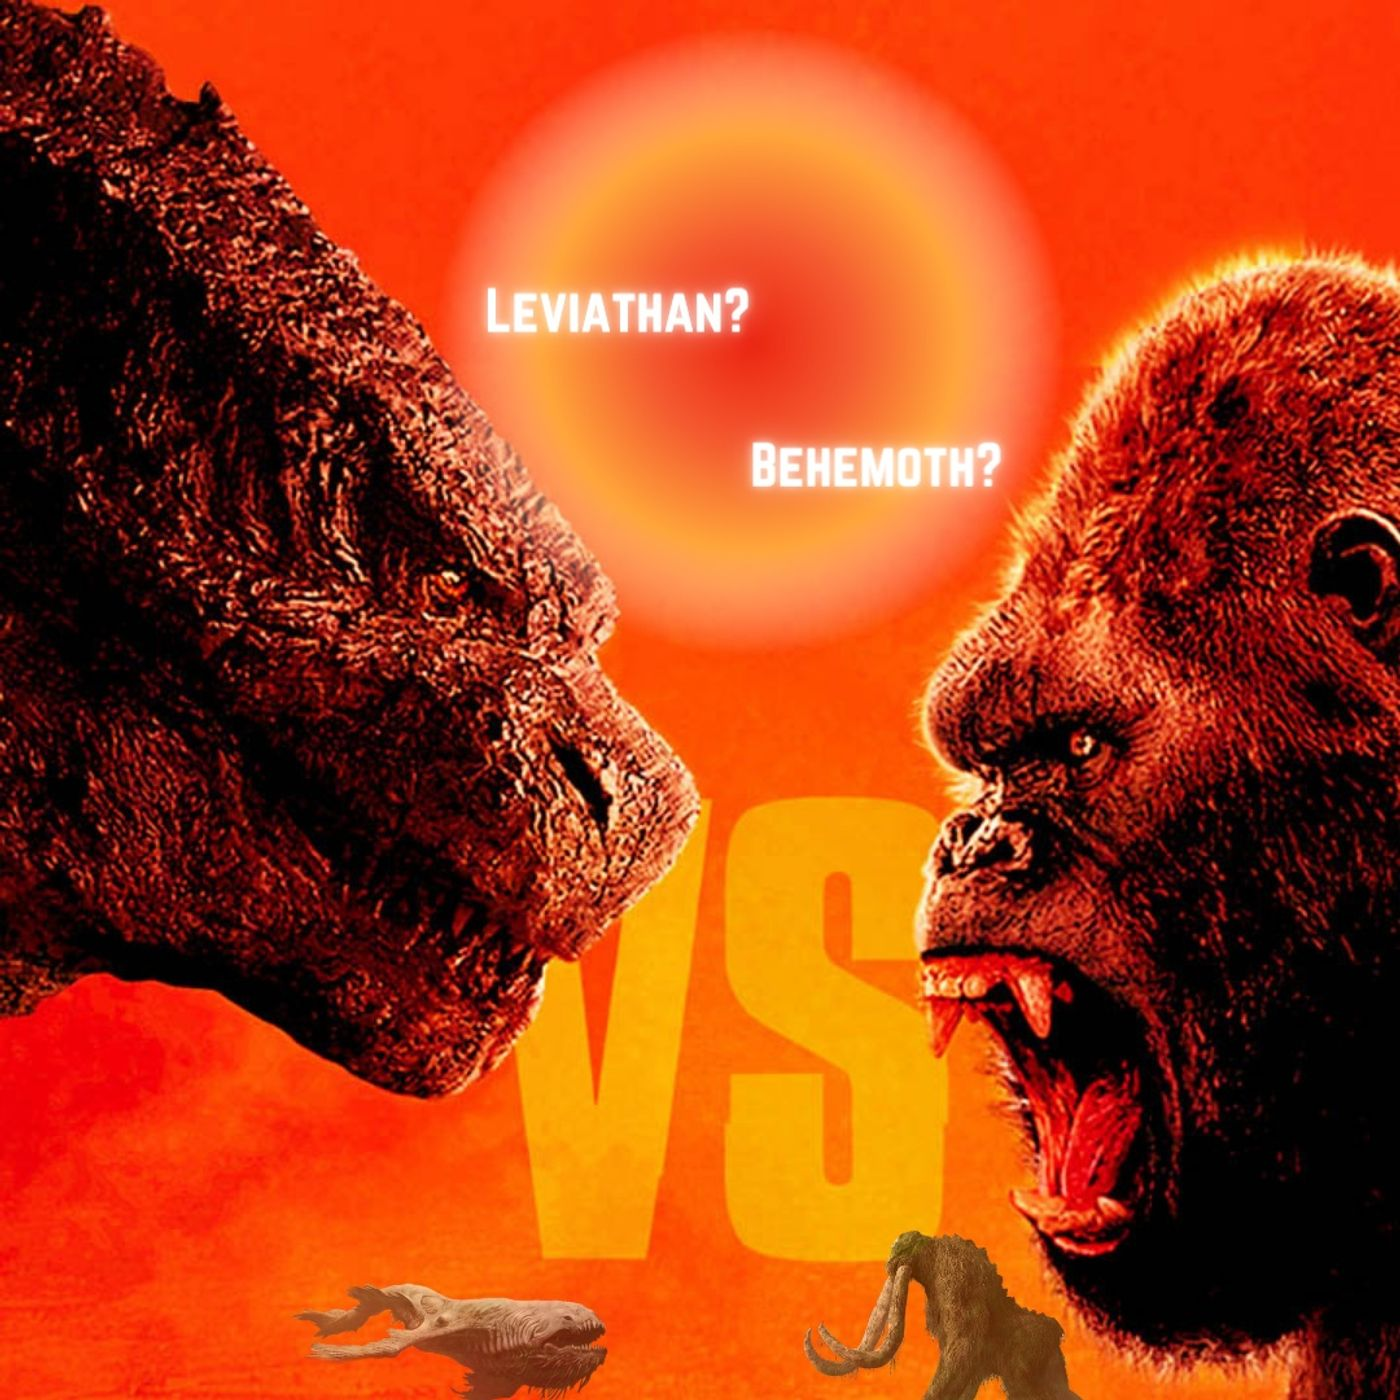 Episode 99- Are Godzilla & King Kong Leviathan & Behemoth?